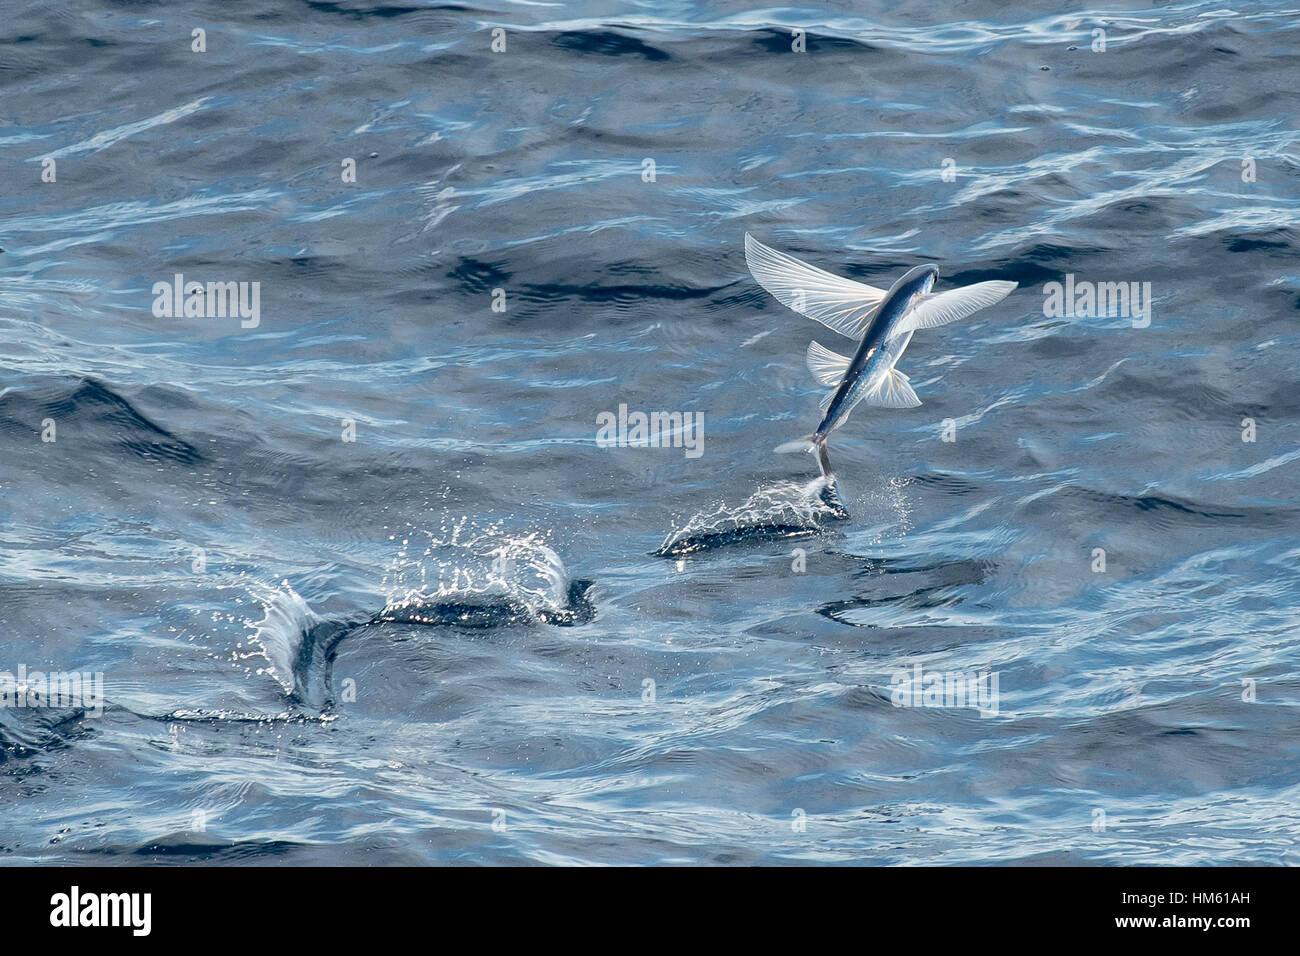 Flying Fish Species taking off, scientific name unknown, several hundred miles off Mauritania, Africa, Atlantic - Stock Image